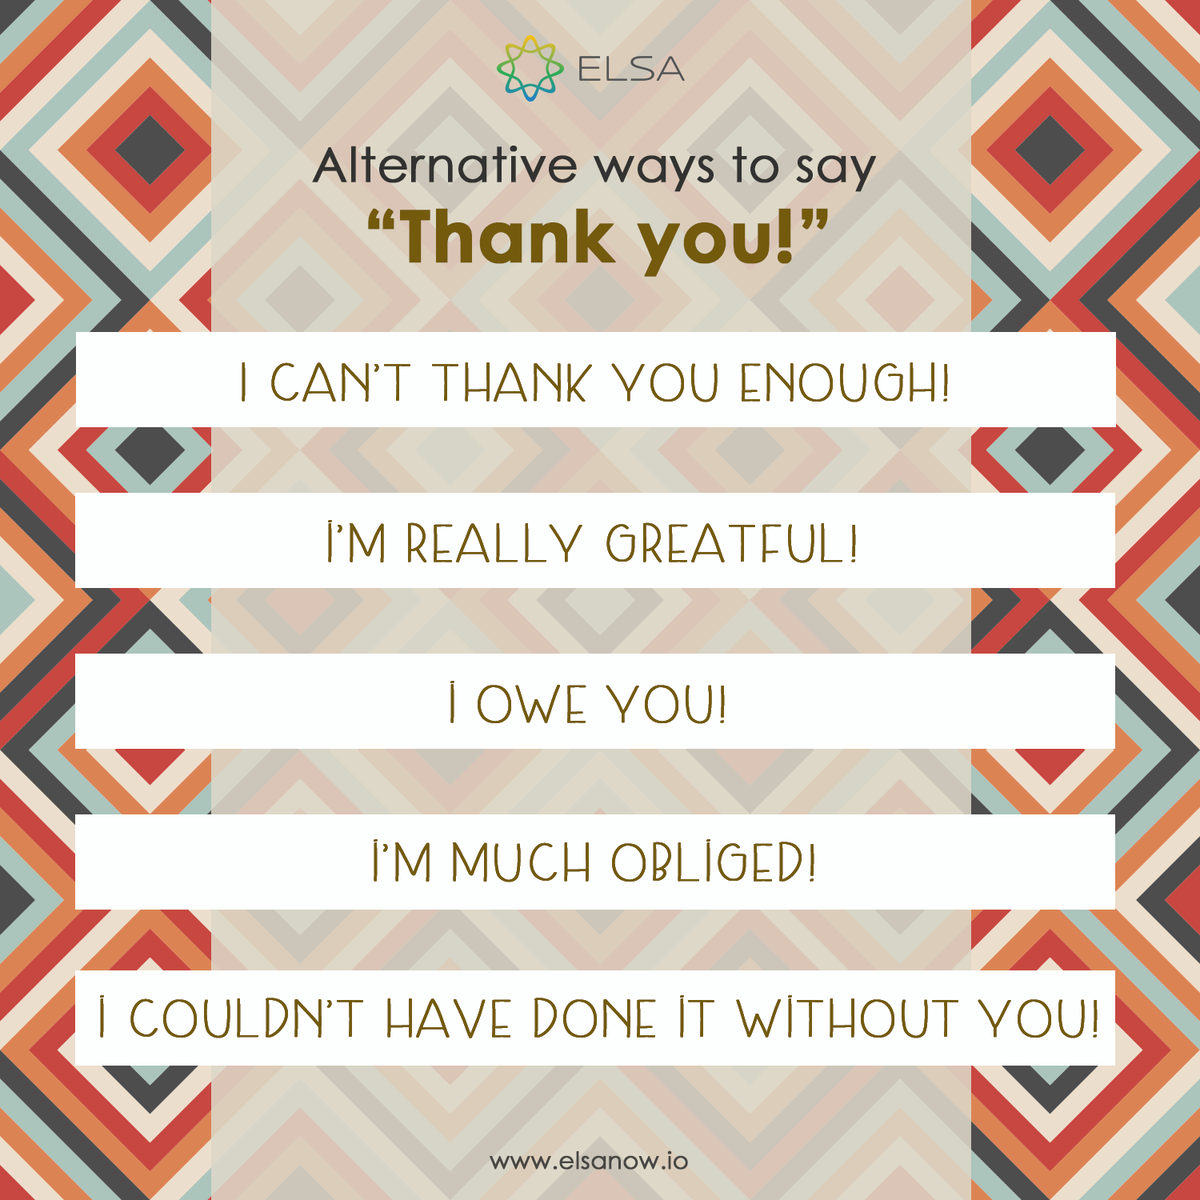 We thank you all for following us. Keep spreading the joy by thanking someone who helps you. Here are some more ways for you to say thanks. Download Elsa speak at https://t.co/bENiEpfRpe to learn spoken English. #EnglishTips #SpokenEnglish #PracticewithElsa #LearnMore https://t.co/H56ZcjnEDt